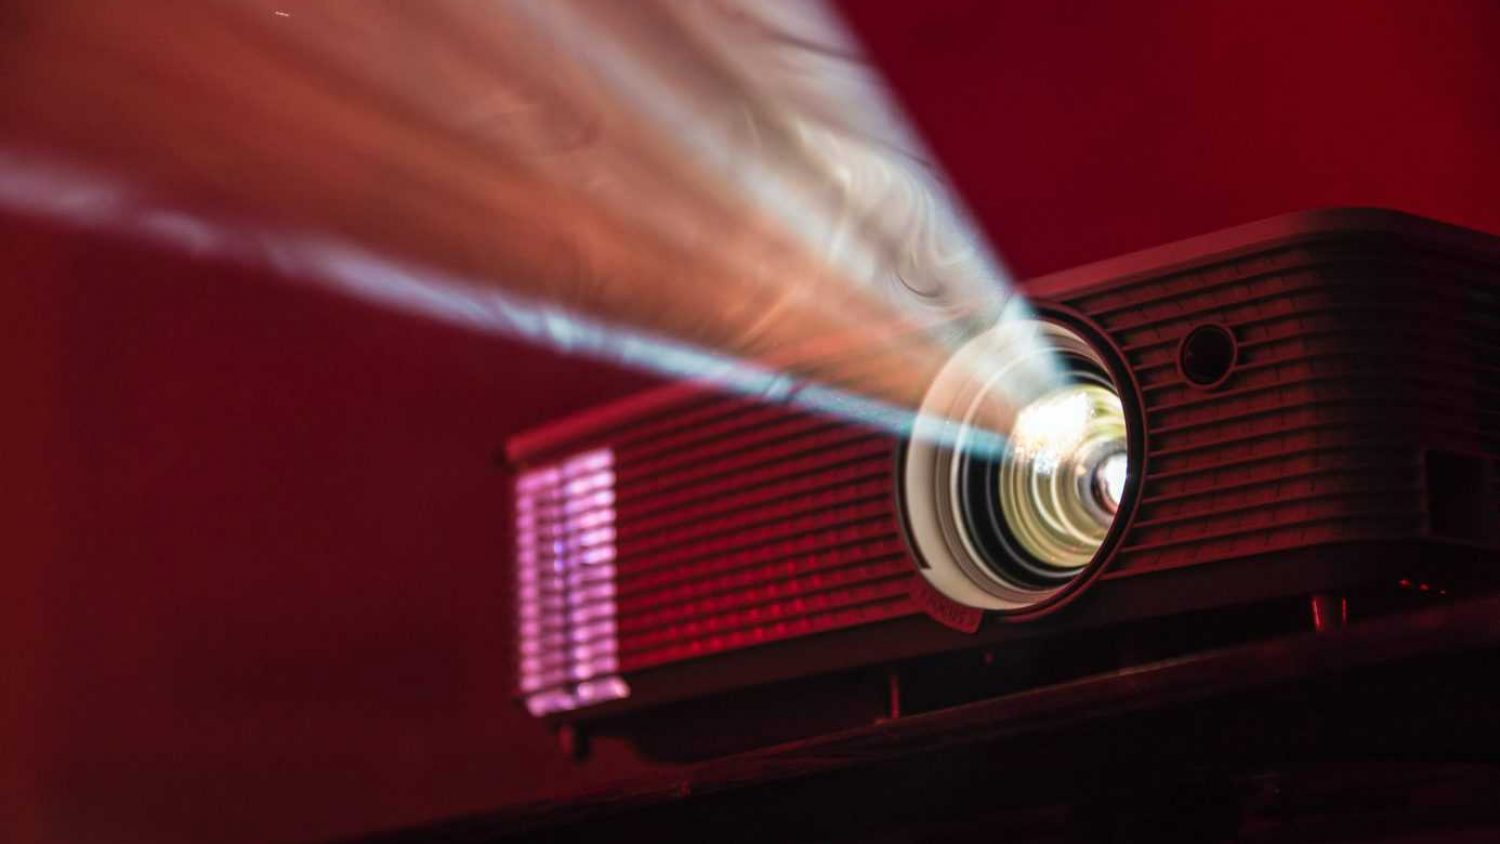 How To Choose A Home Theater Projector In 2021 – The Effortless Guide To The Ultimate Home Viewing Experience